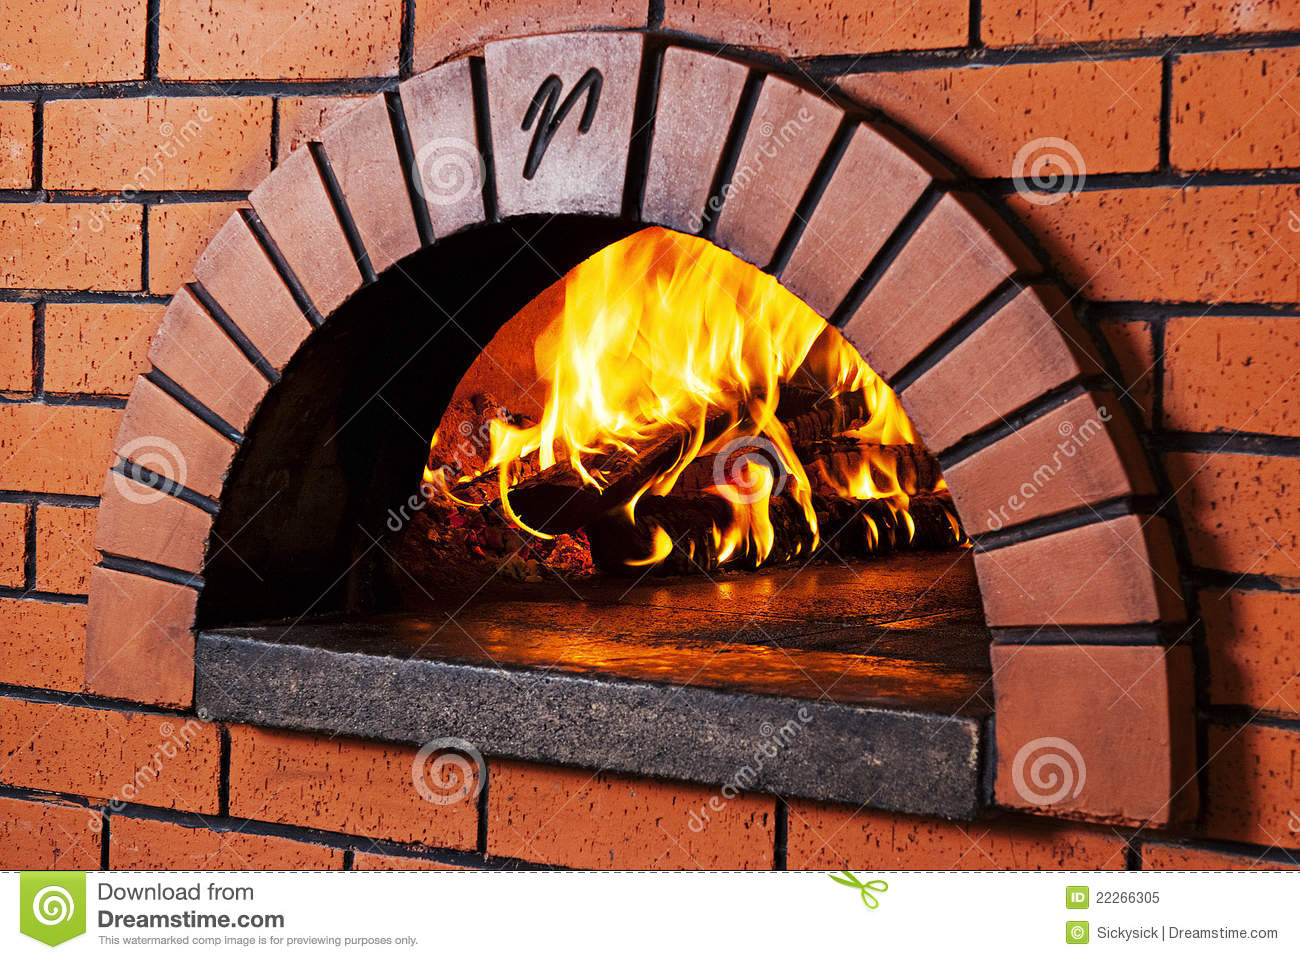 how to cook in a brick pizza oven